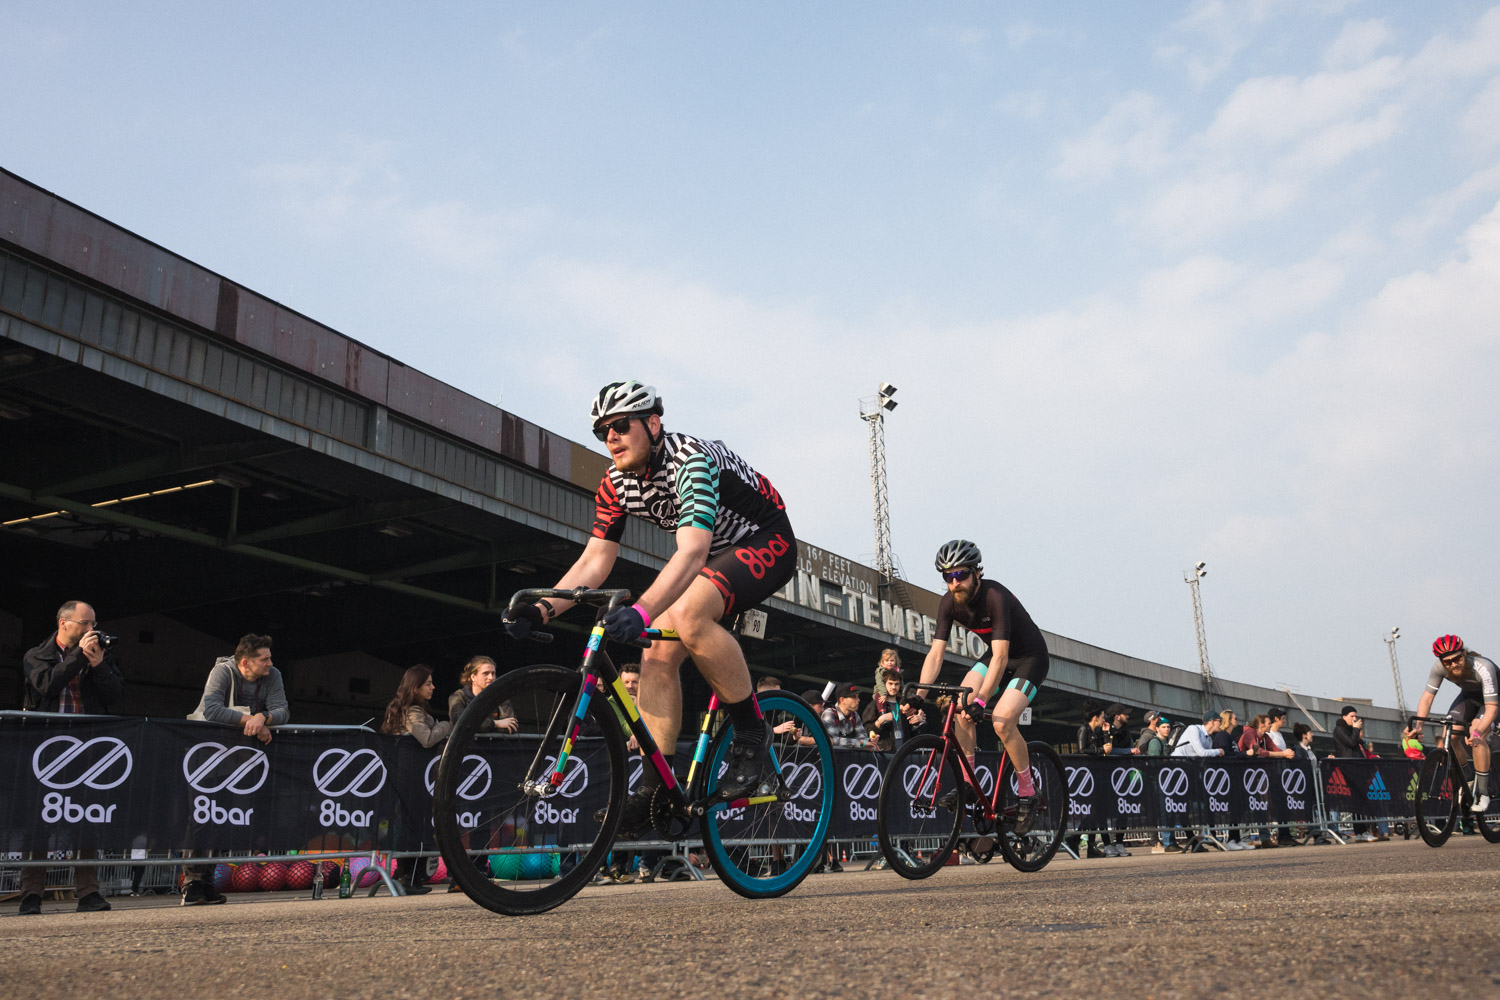 8brcrit 8bar rookies fixed gear crit 2 - Schnell, schneller, 8bar crit 2018 - der Rennbericht!